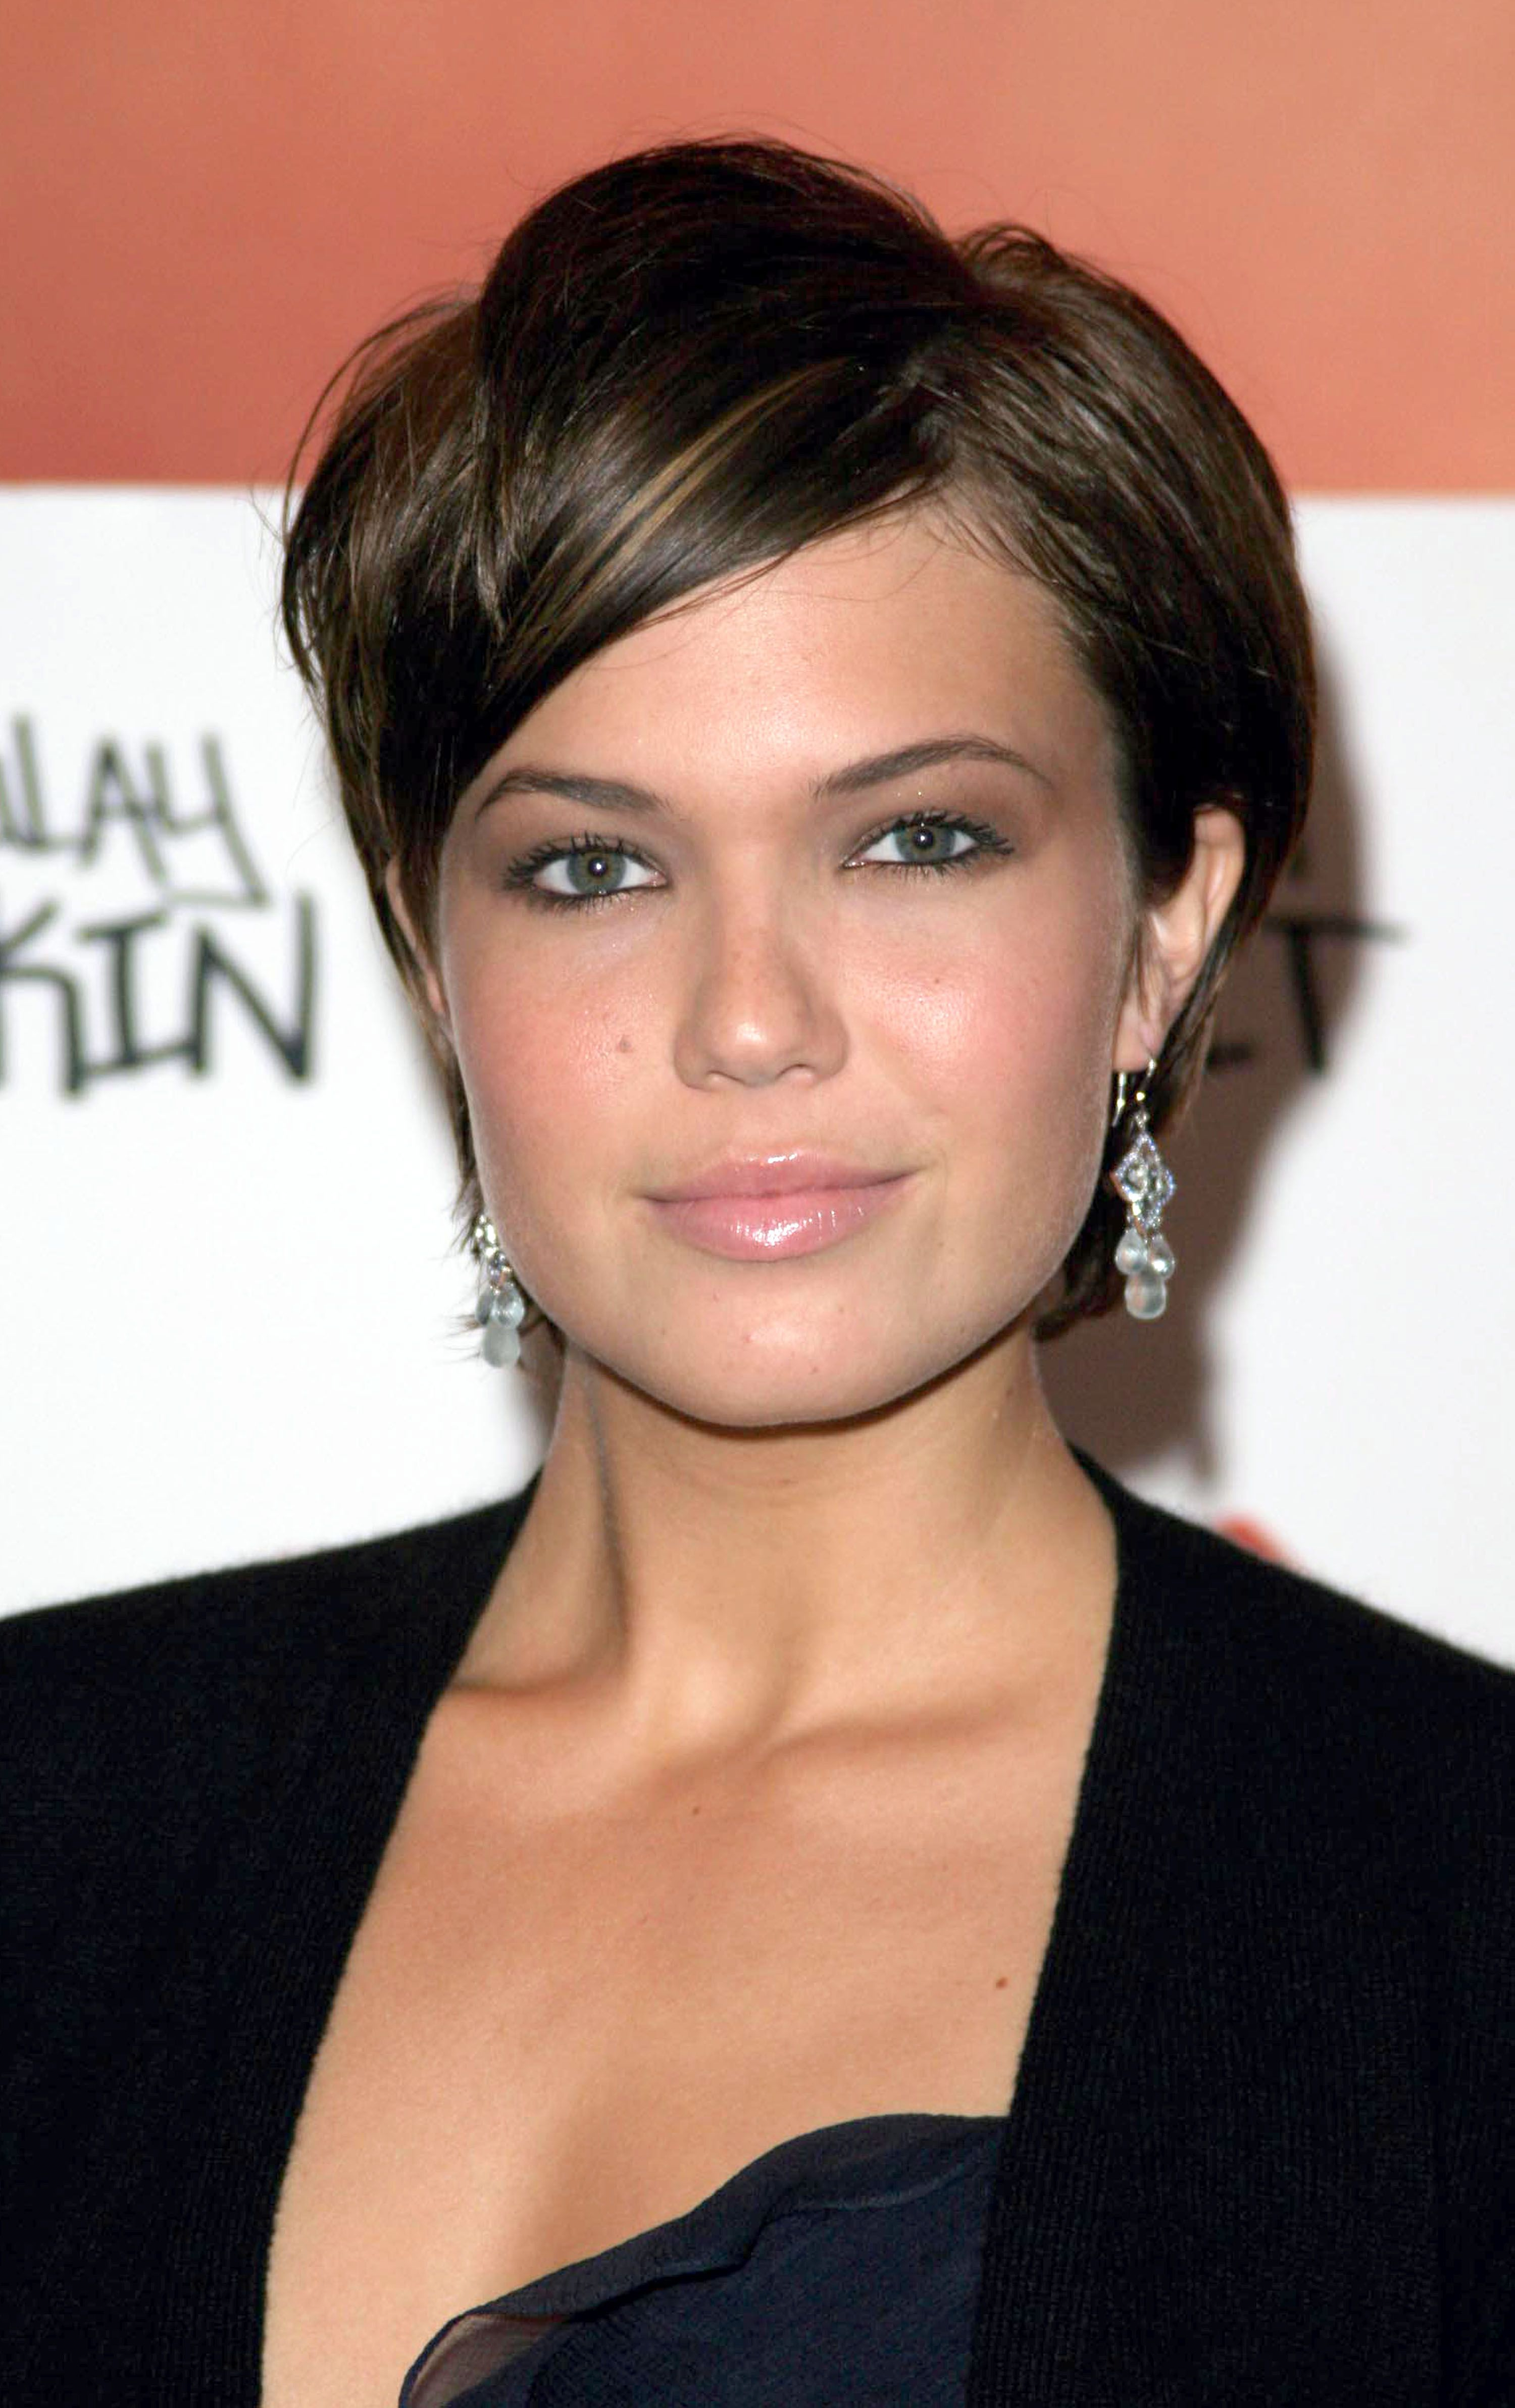 25 Best Hairstyles For Round Faces in 2020 , Easy Haircut